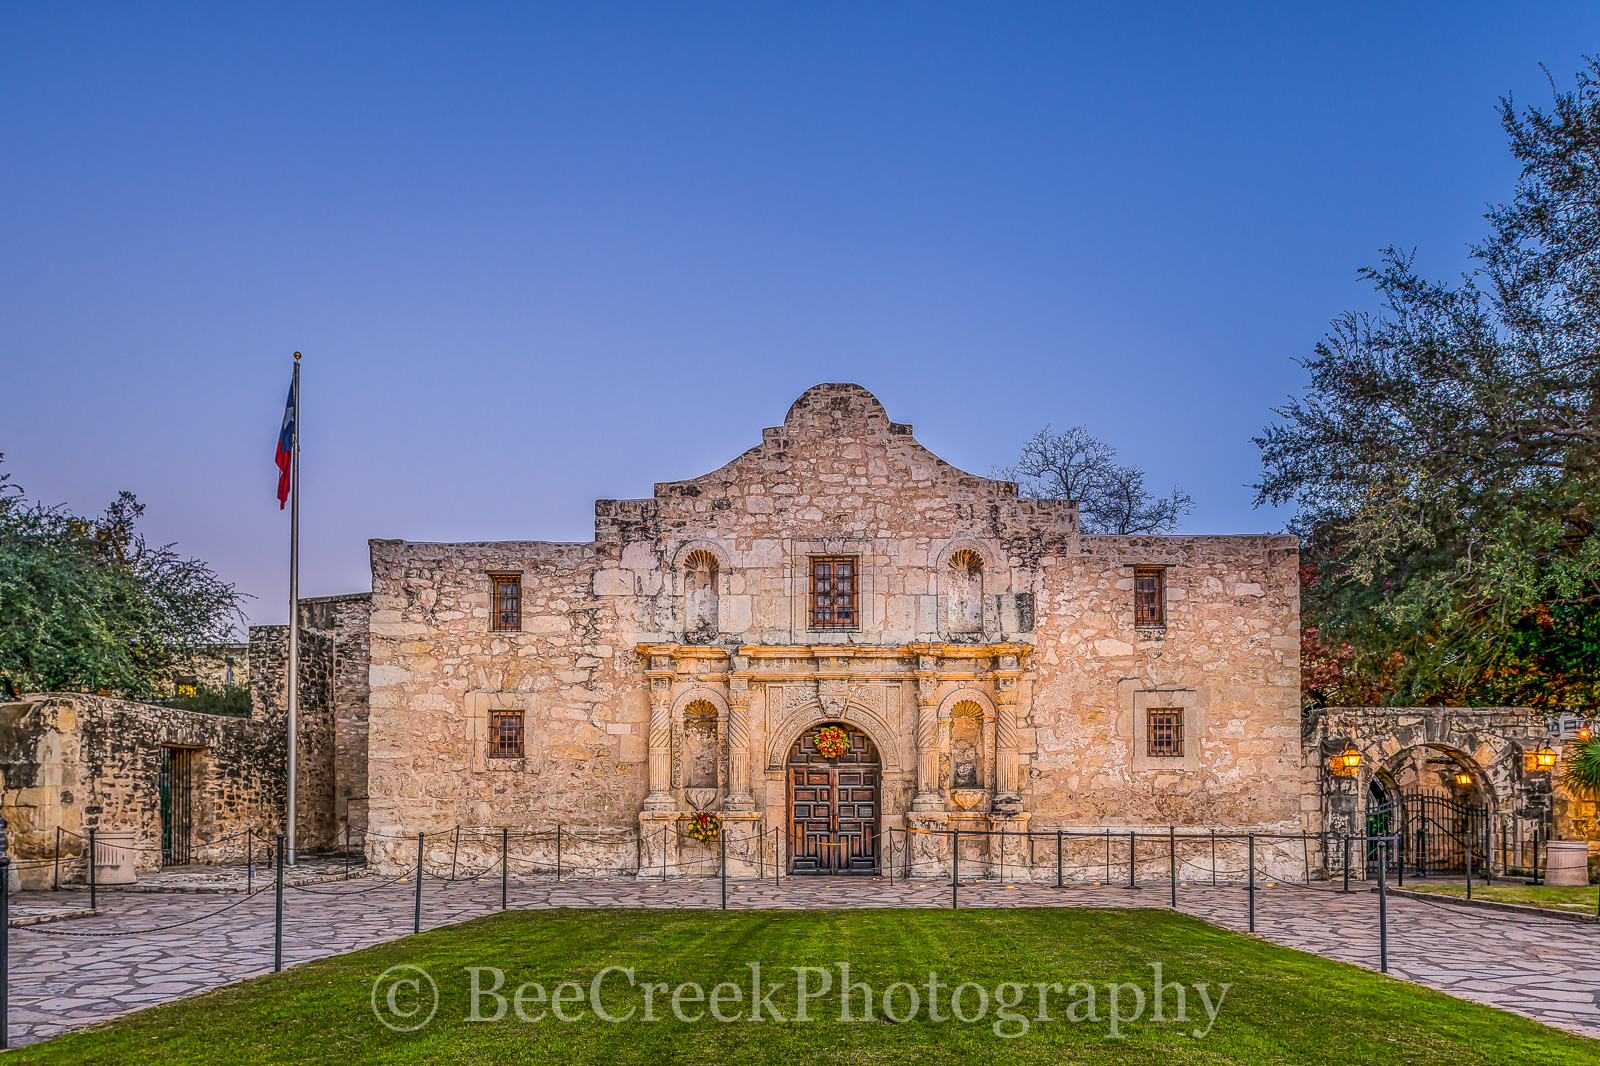 Alamo, San Antonio, Santa Anna, city, cityscape, cityscapes, downtown, dusk, historic, history, landmark, mexico, mission, missions, tourist, twilight, photo